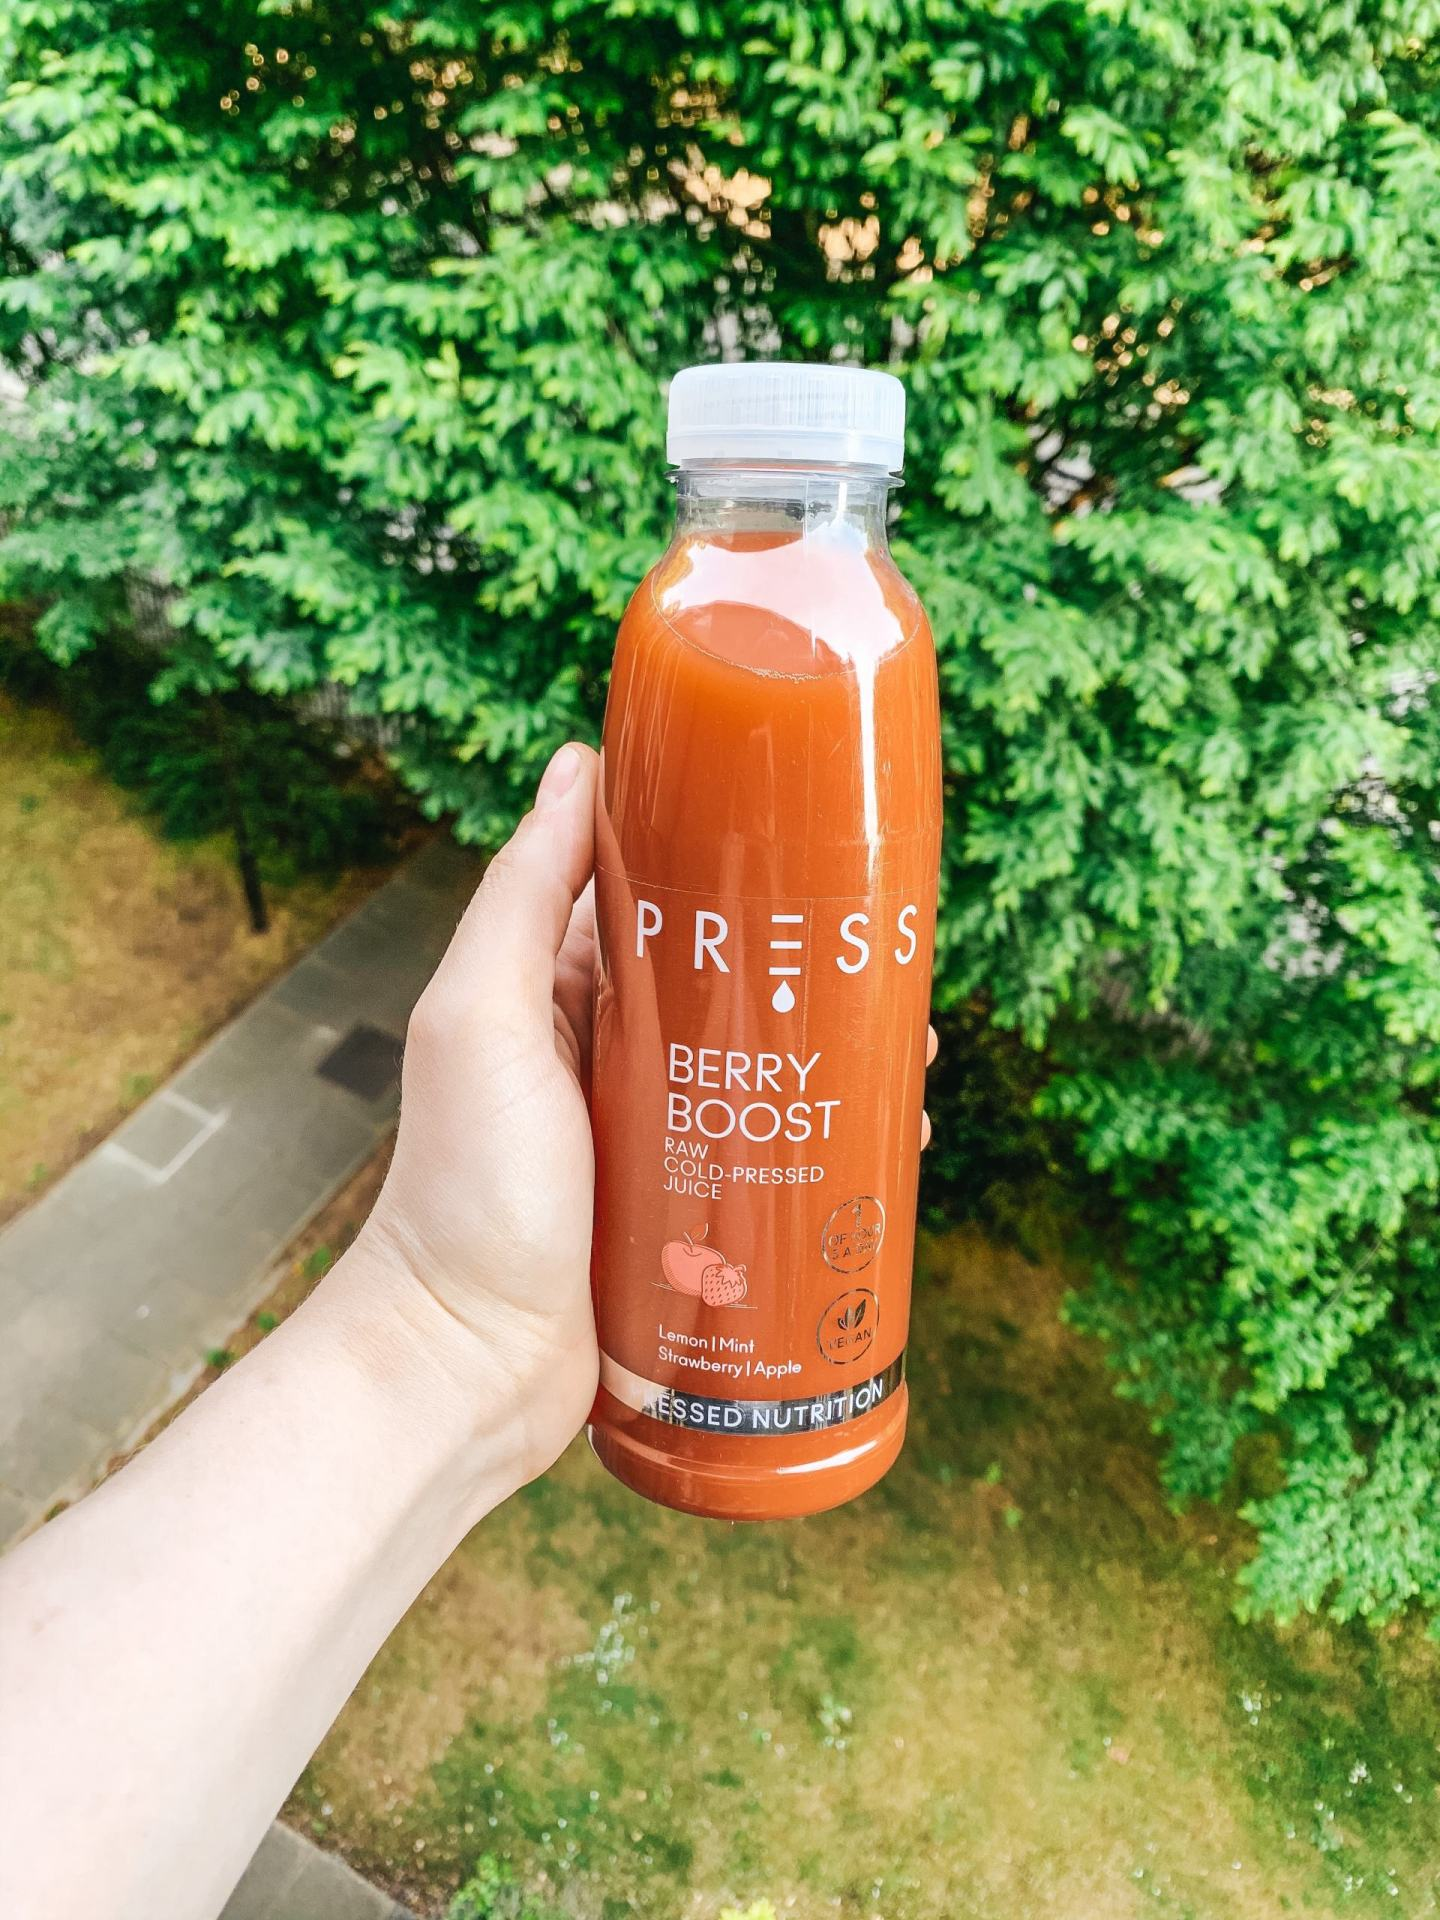 berry-boost-smoothie-cold-press-juice-www.stylinglifetoday.com